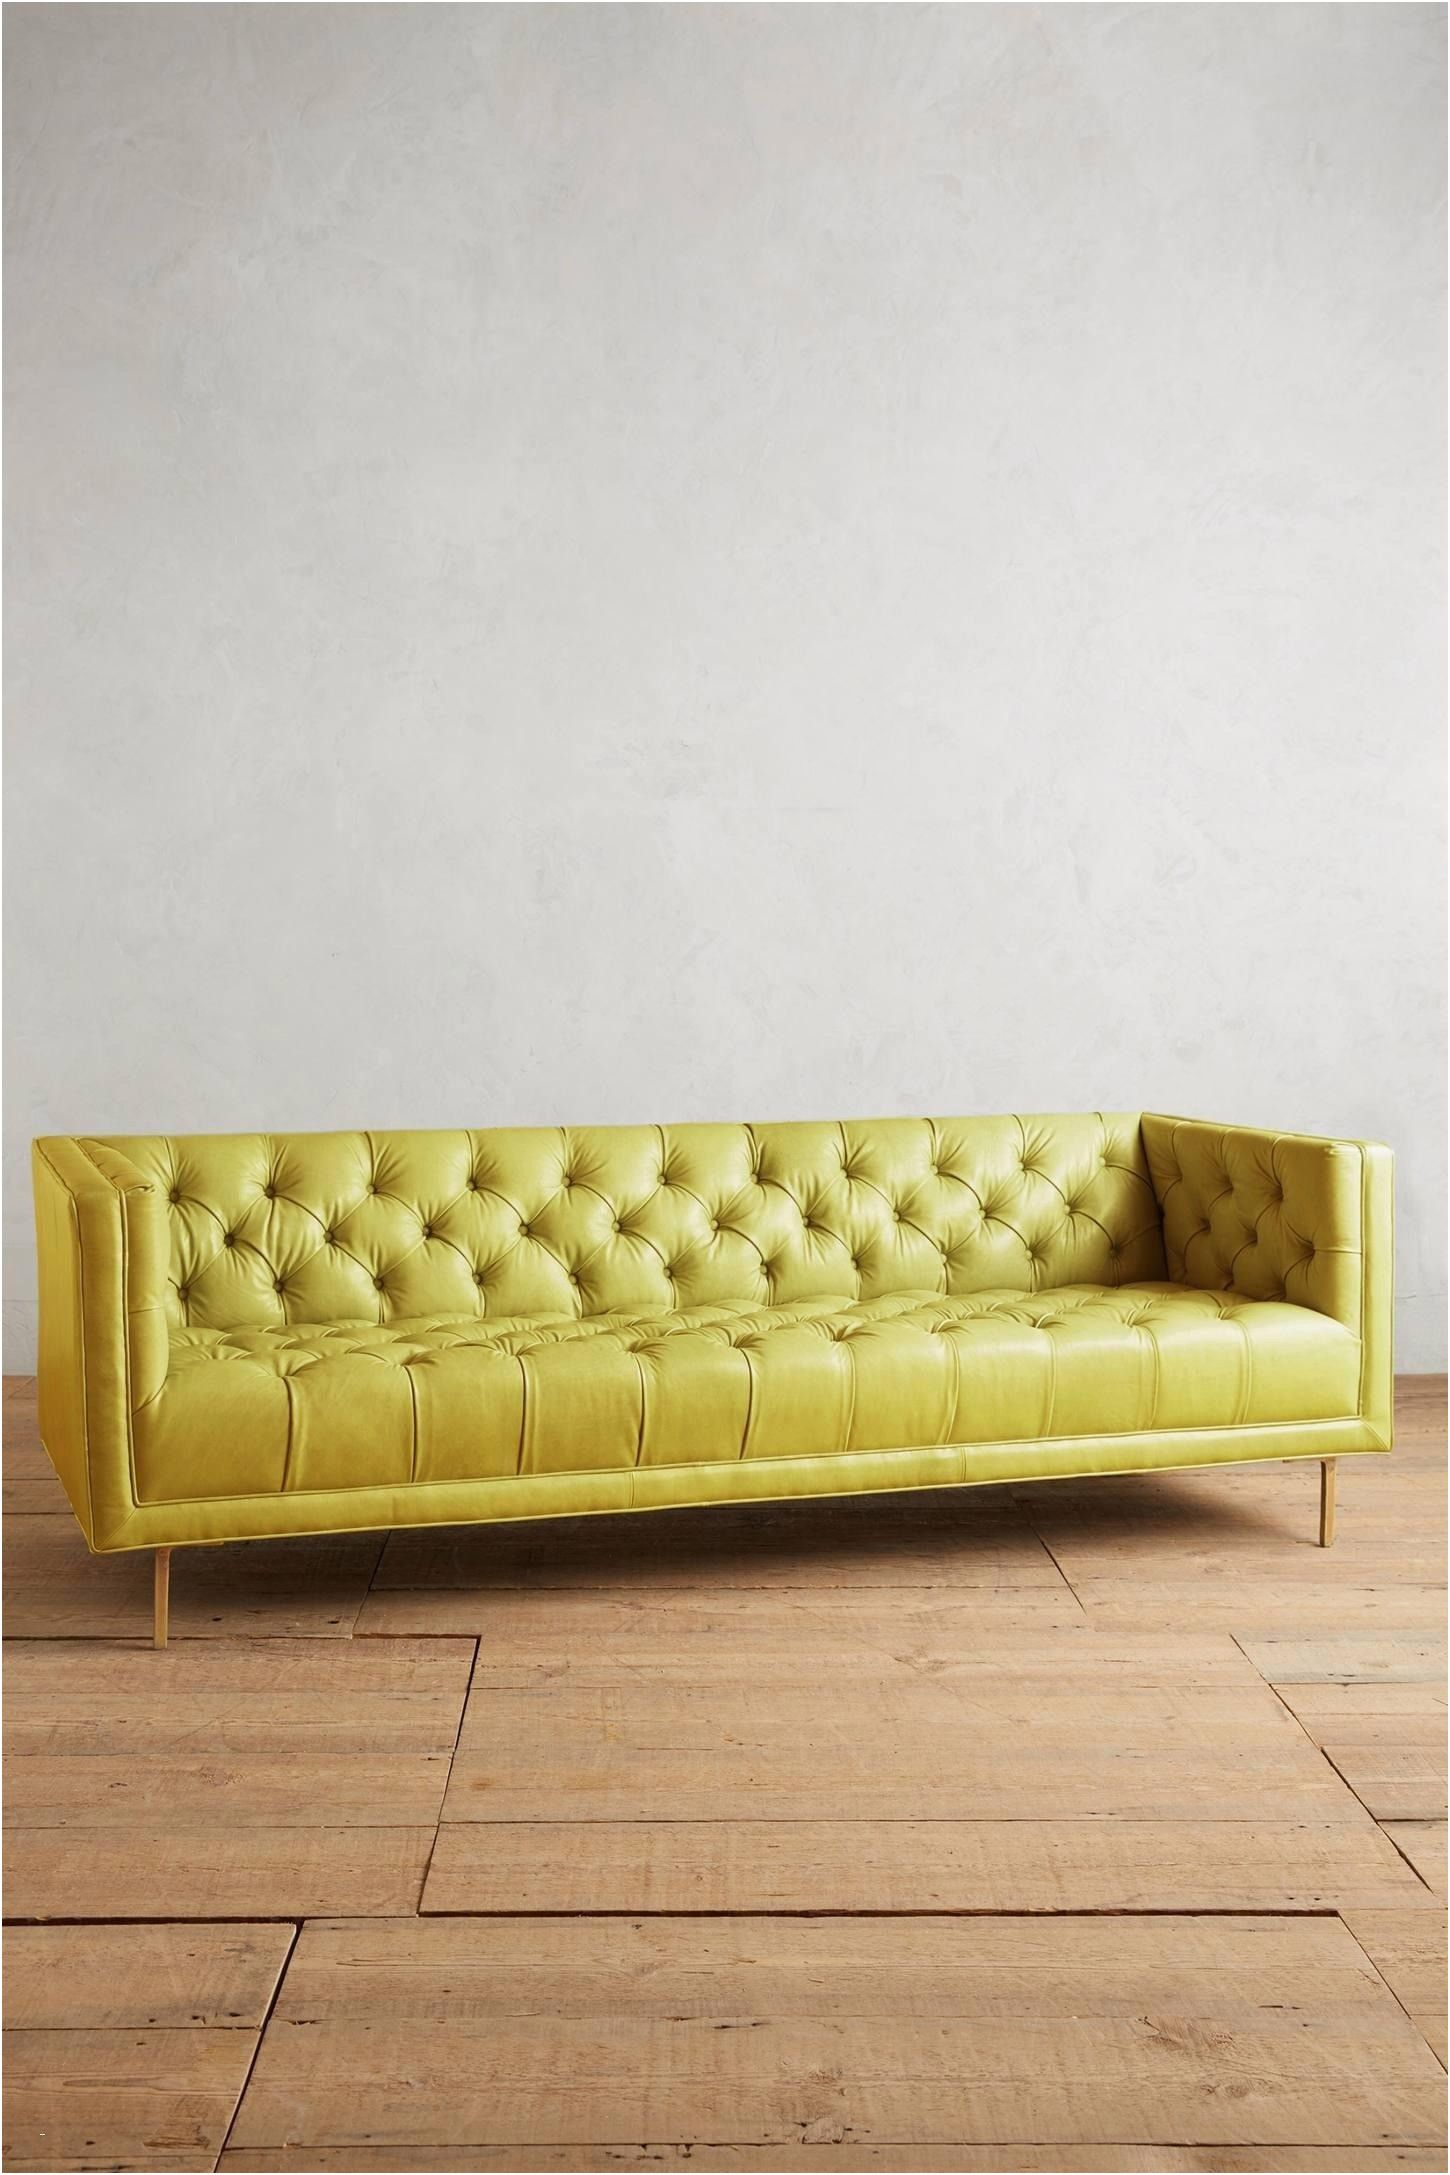 Perfect Couch 3 Teilig